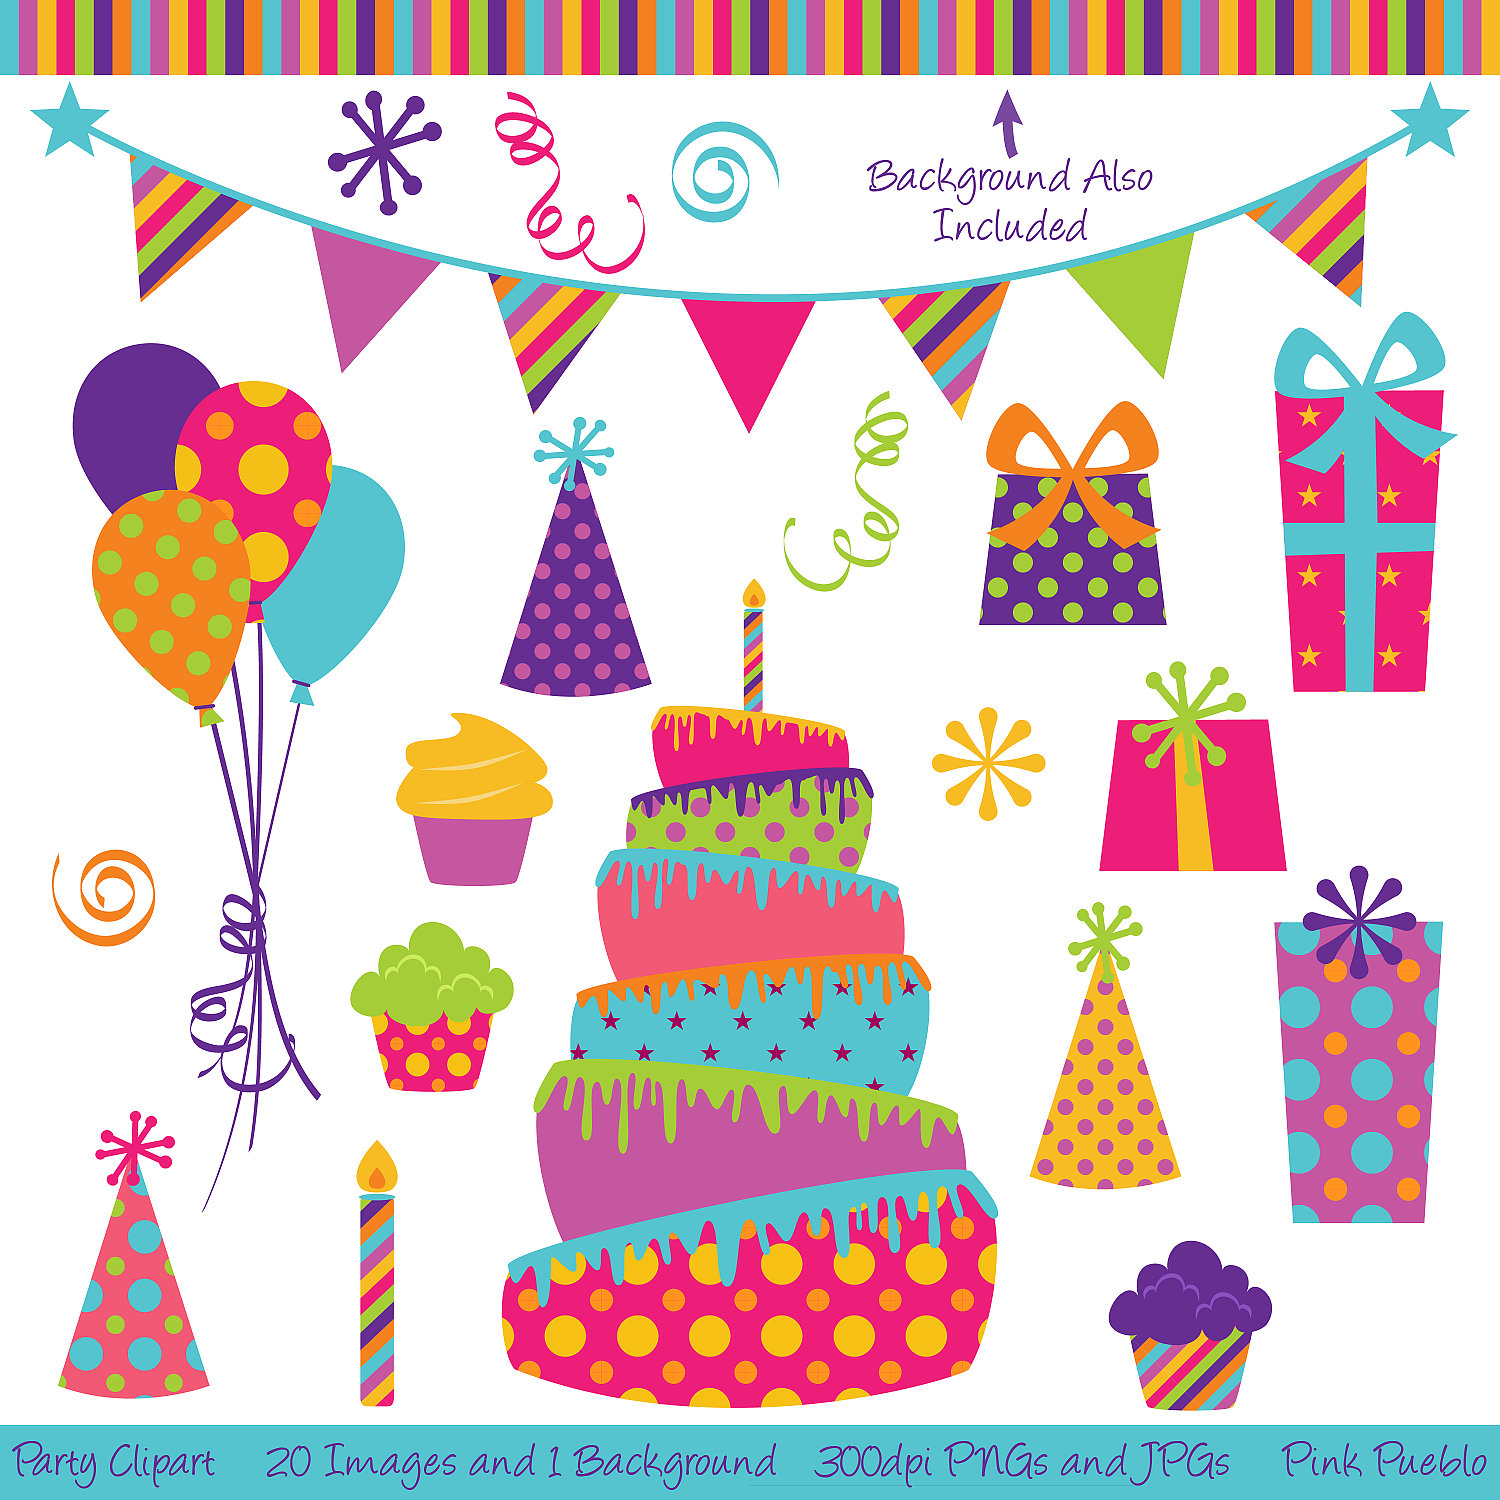 Birthday cake graphics clip art graphic library stock Birthday cake graphics clip art - ClipartFest graphic library stock